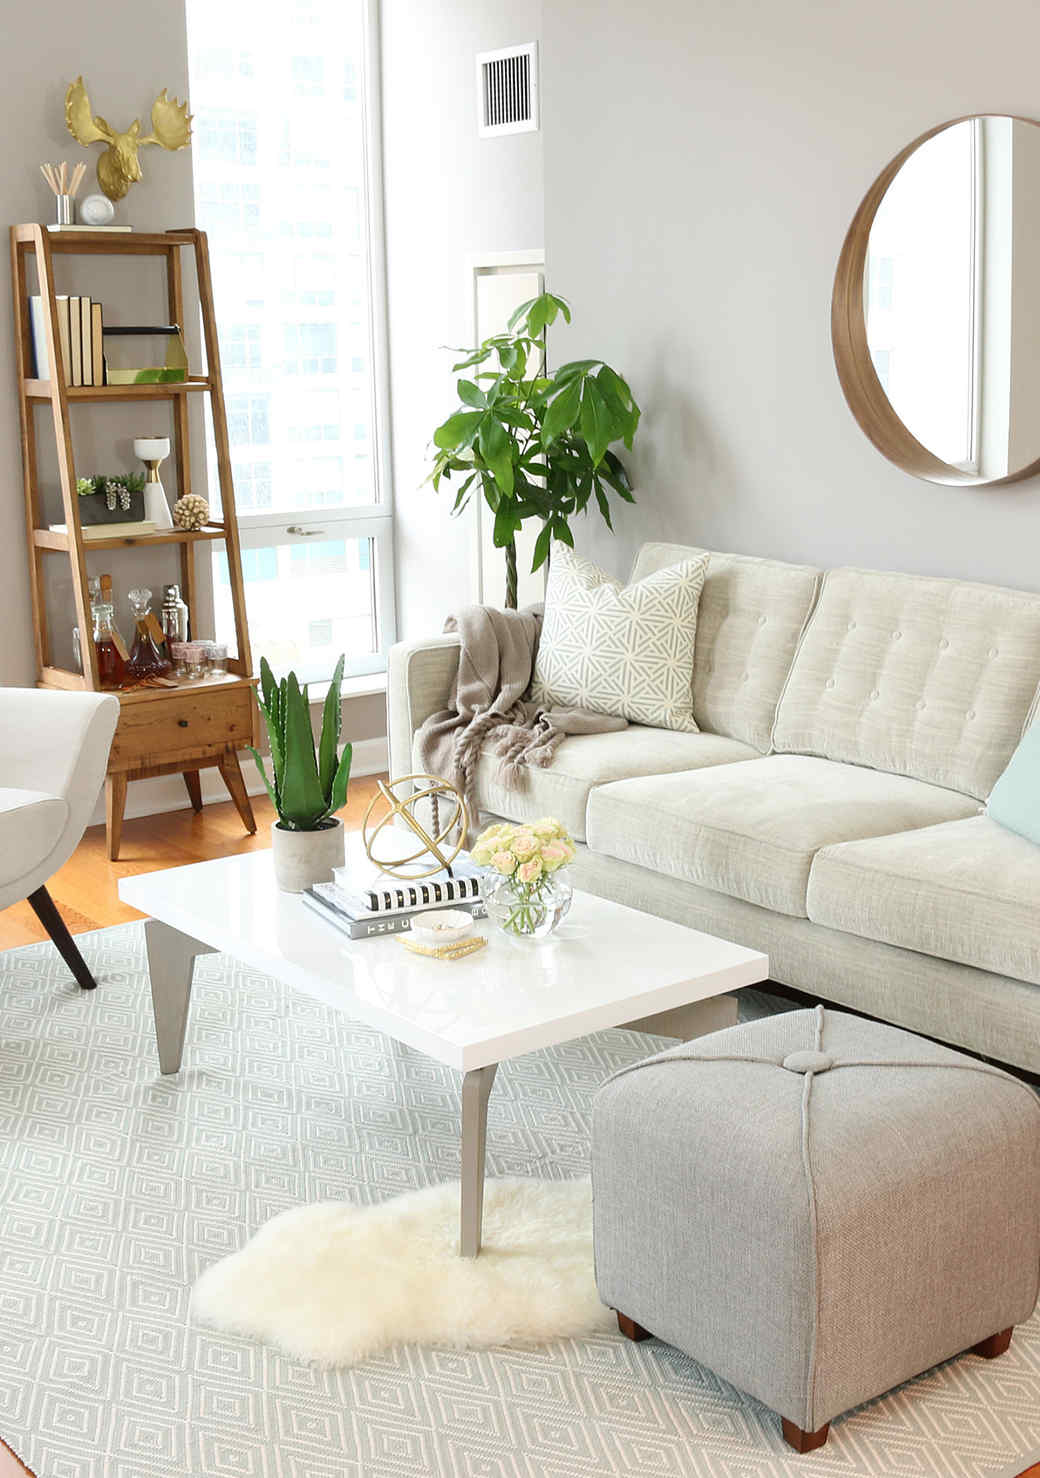 Where to Save and Where to Splurge On Your Décor